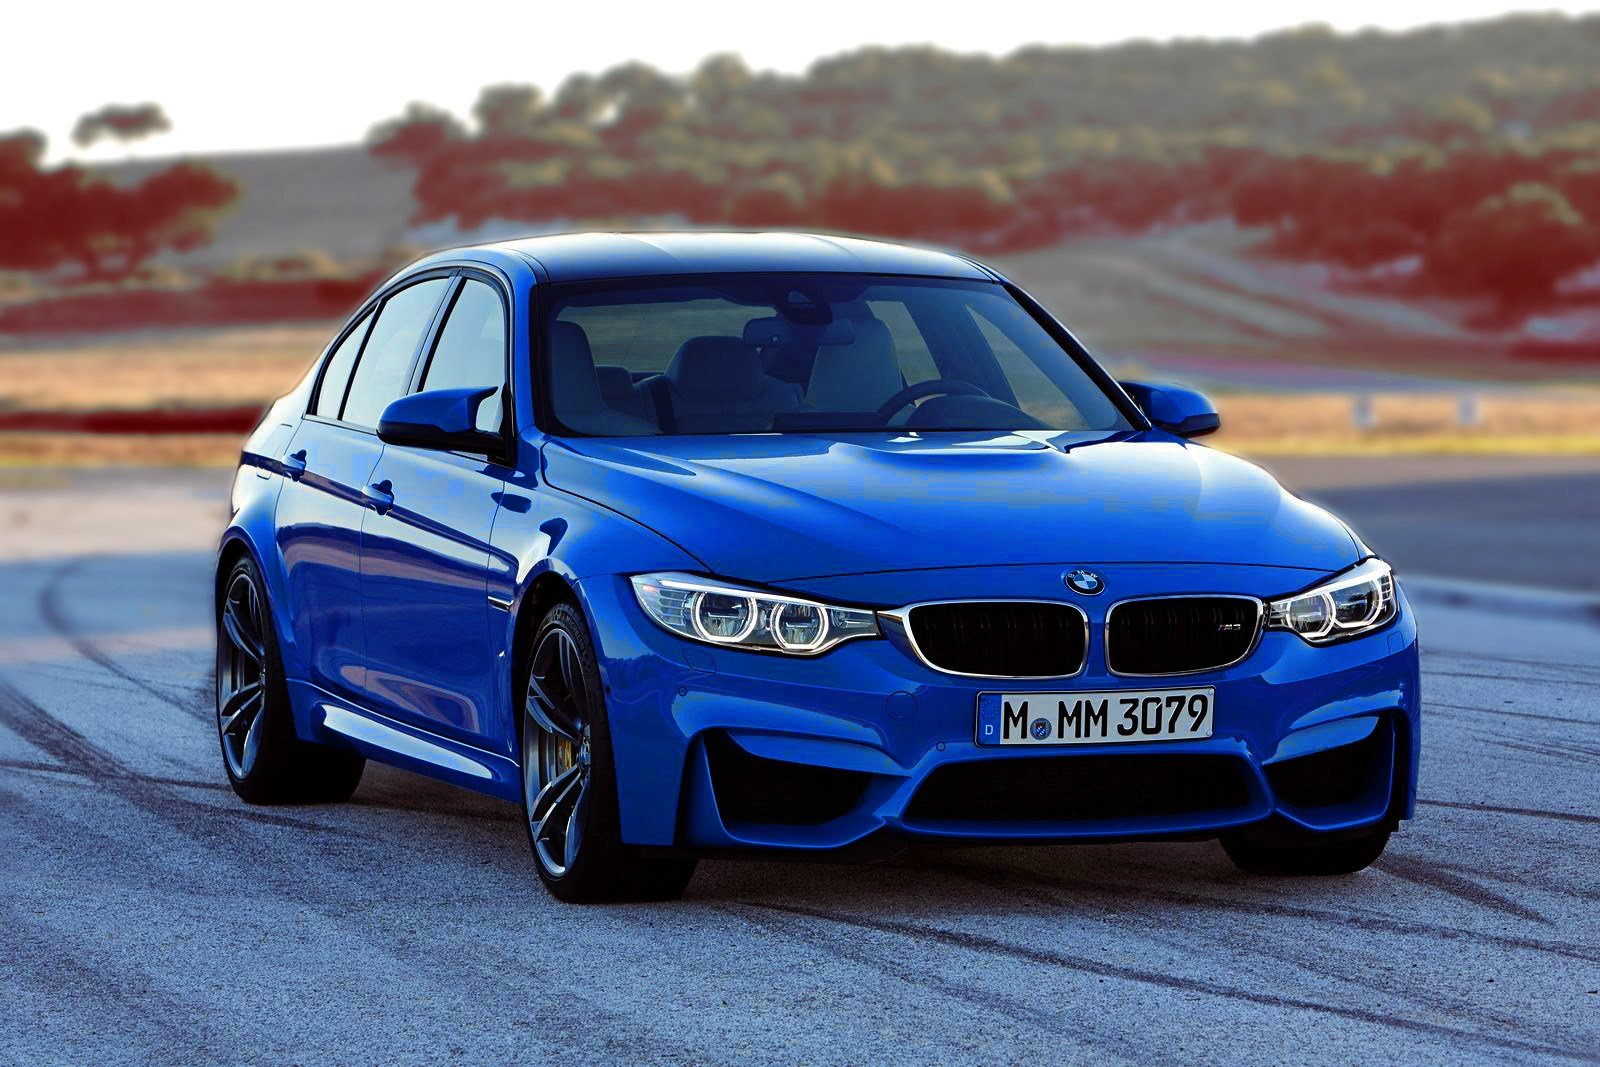 New Bmw M3 Bmw Car Blue Cars Wallpapers Hd Desktop And On This Month